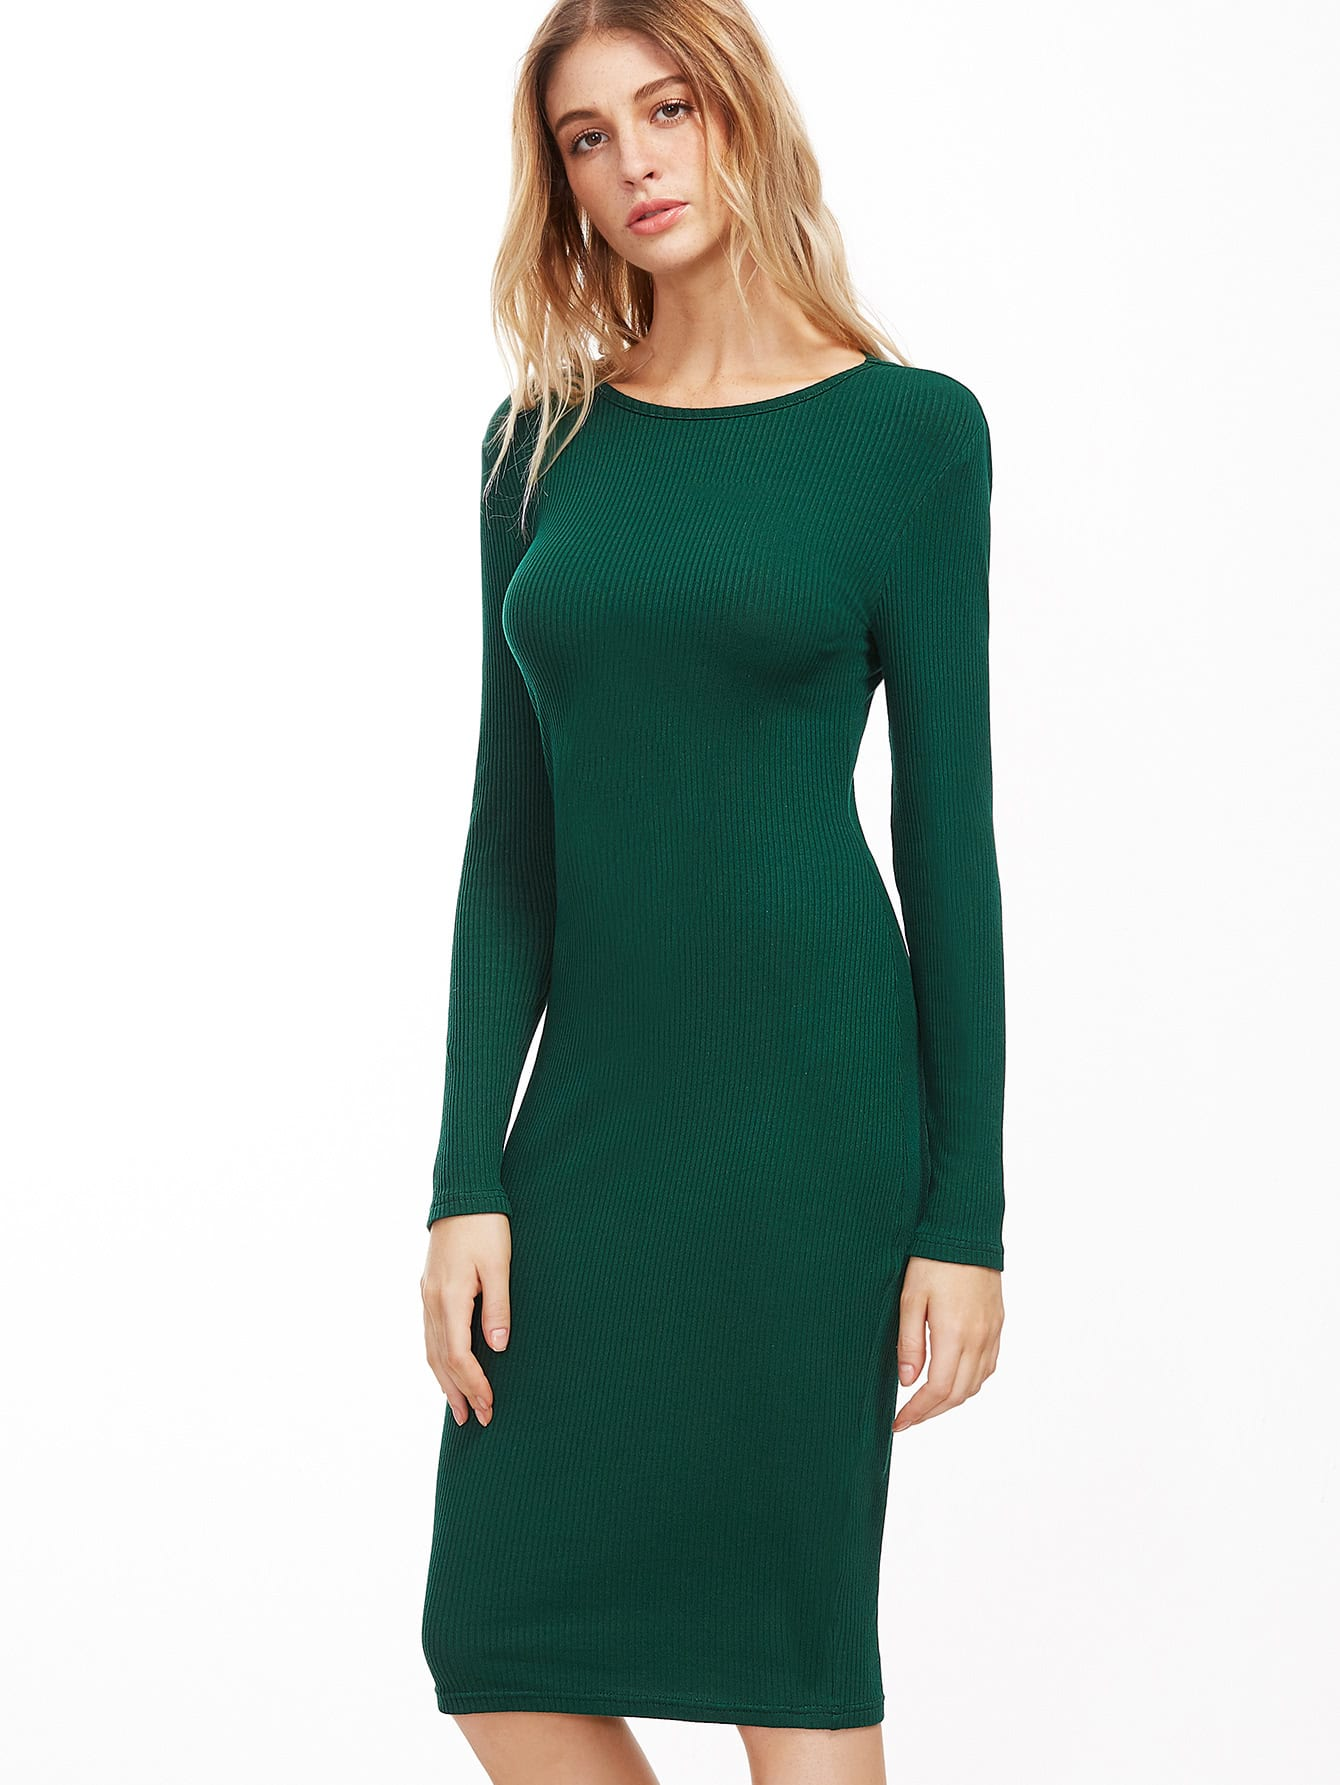 Forest Green Ribbed Pencil Dress dress161024704